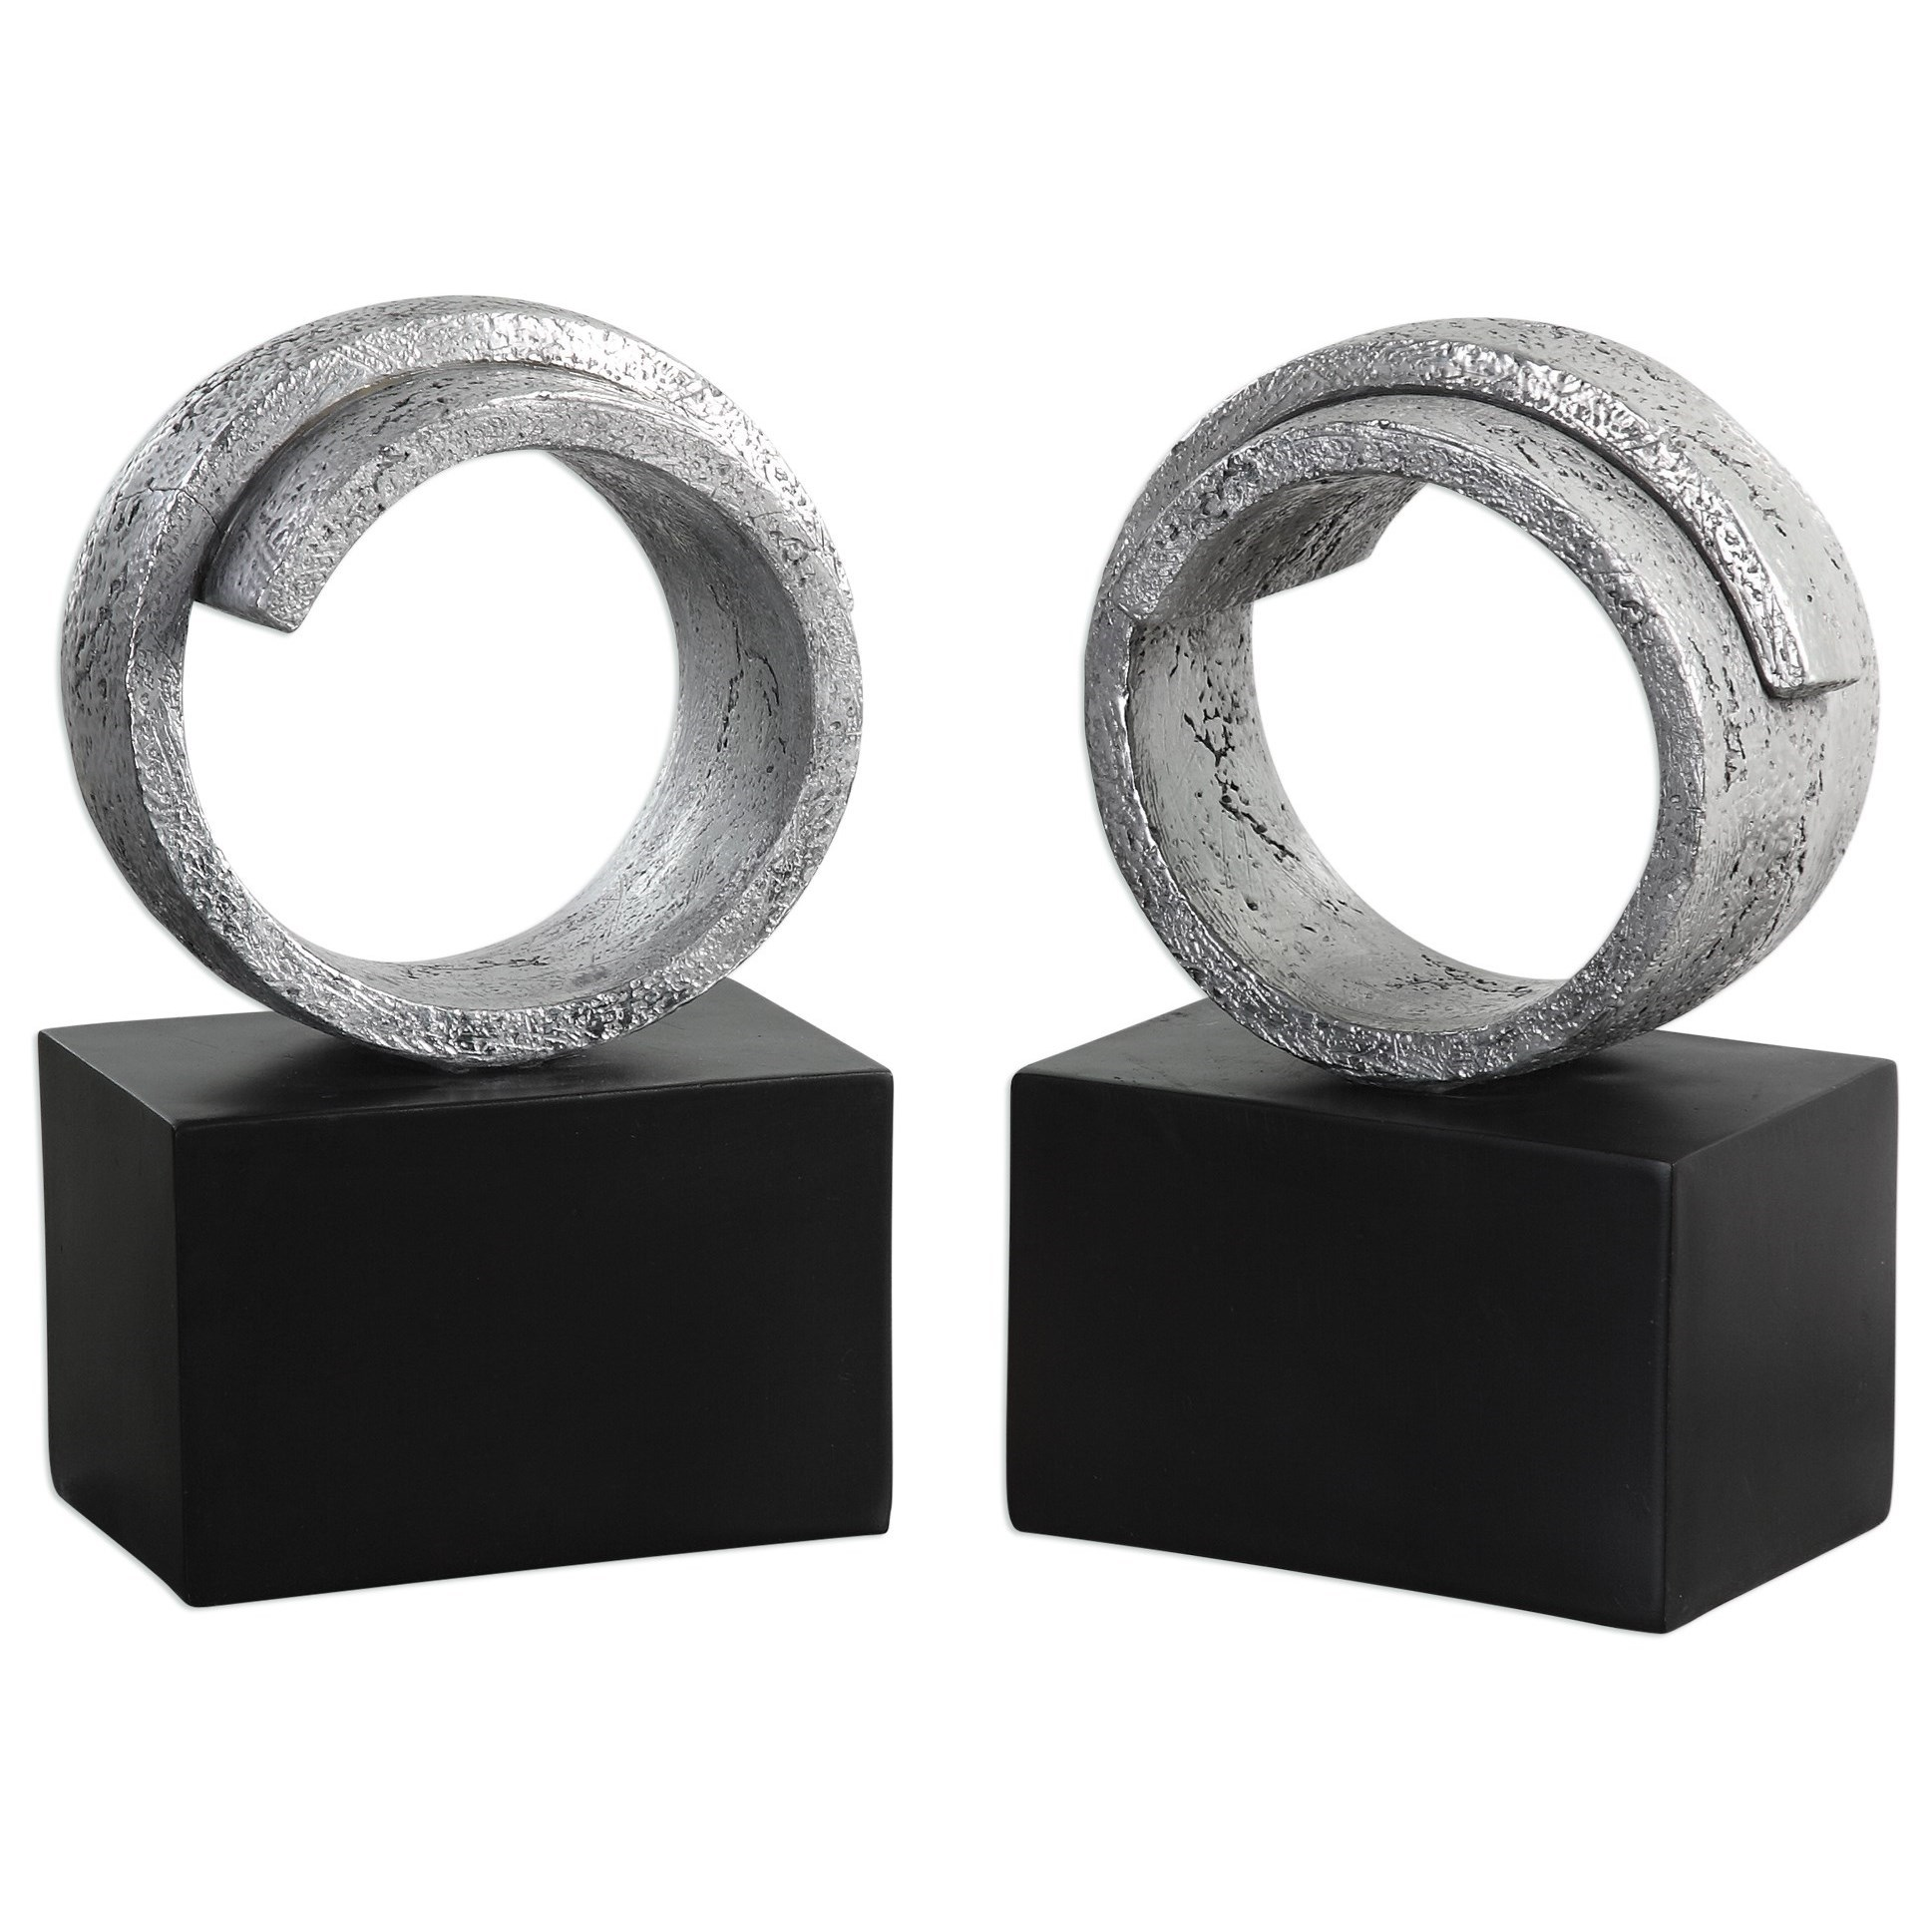 Uttermost Accessories Twist Bookends (Set of 2) - Item Number: 20140